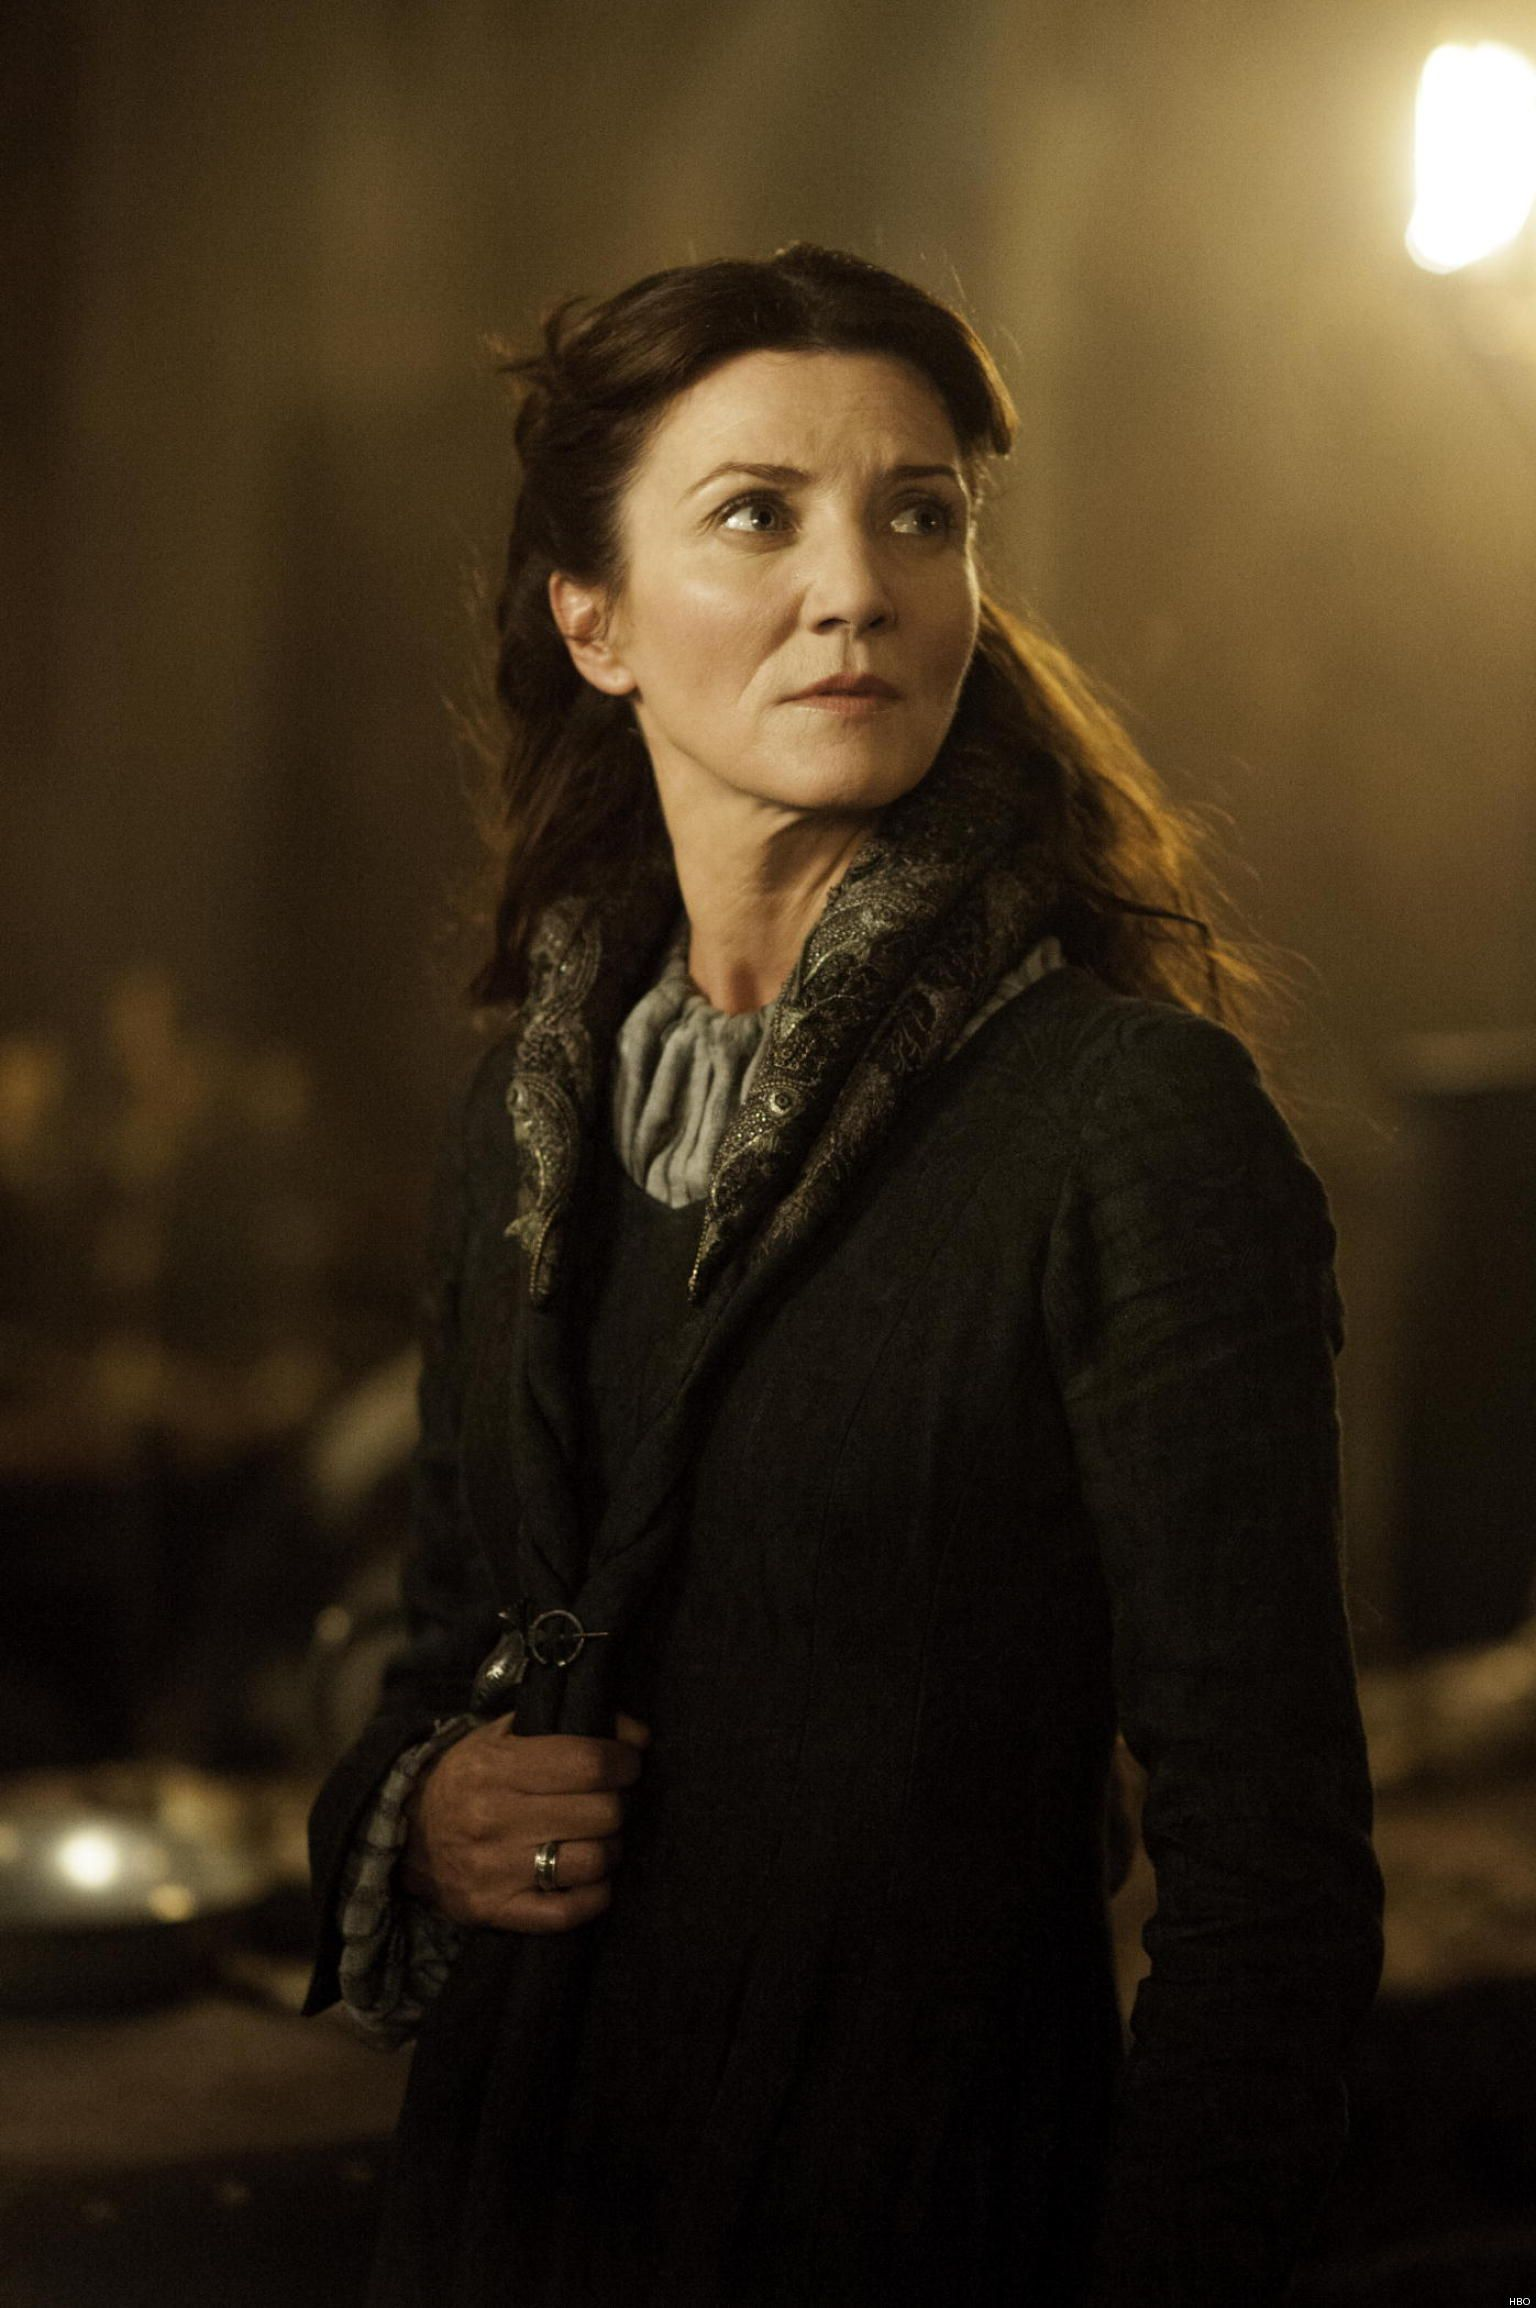 Grrm Says The Red Wedding Was Based On Real Events Catelyn Stark Michelle Fairley Actors